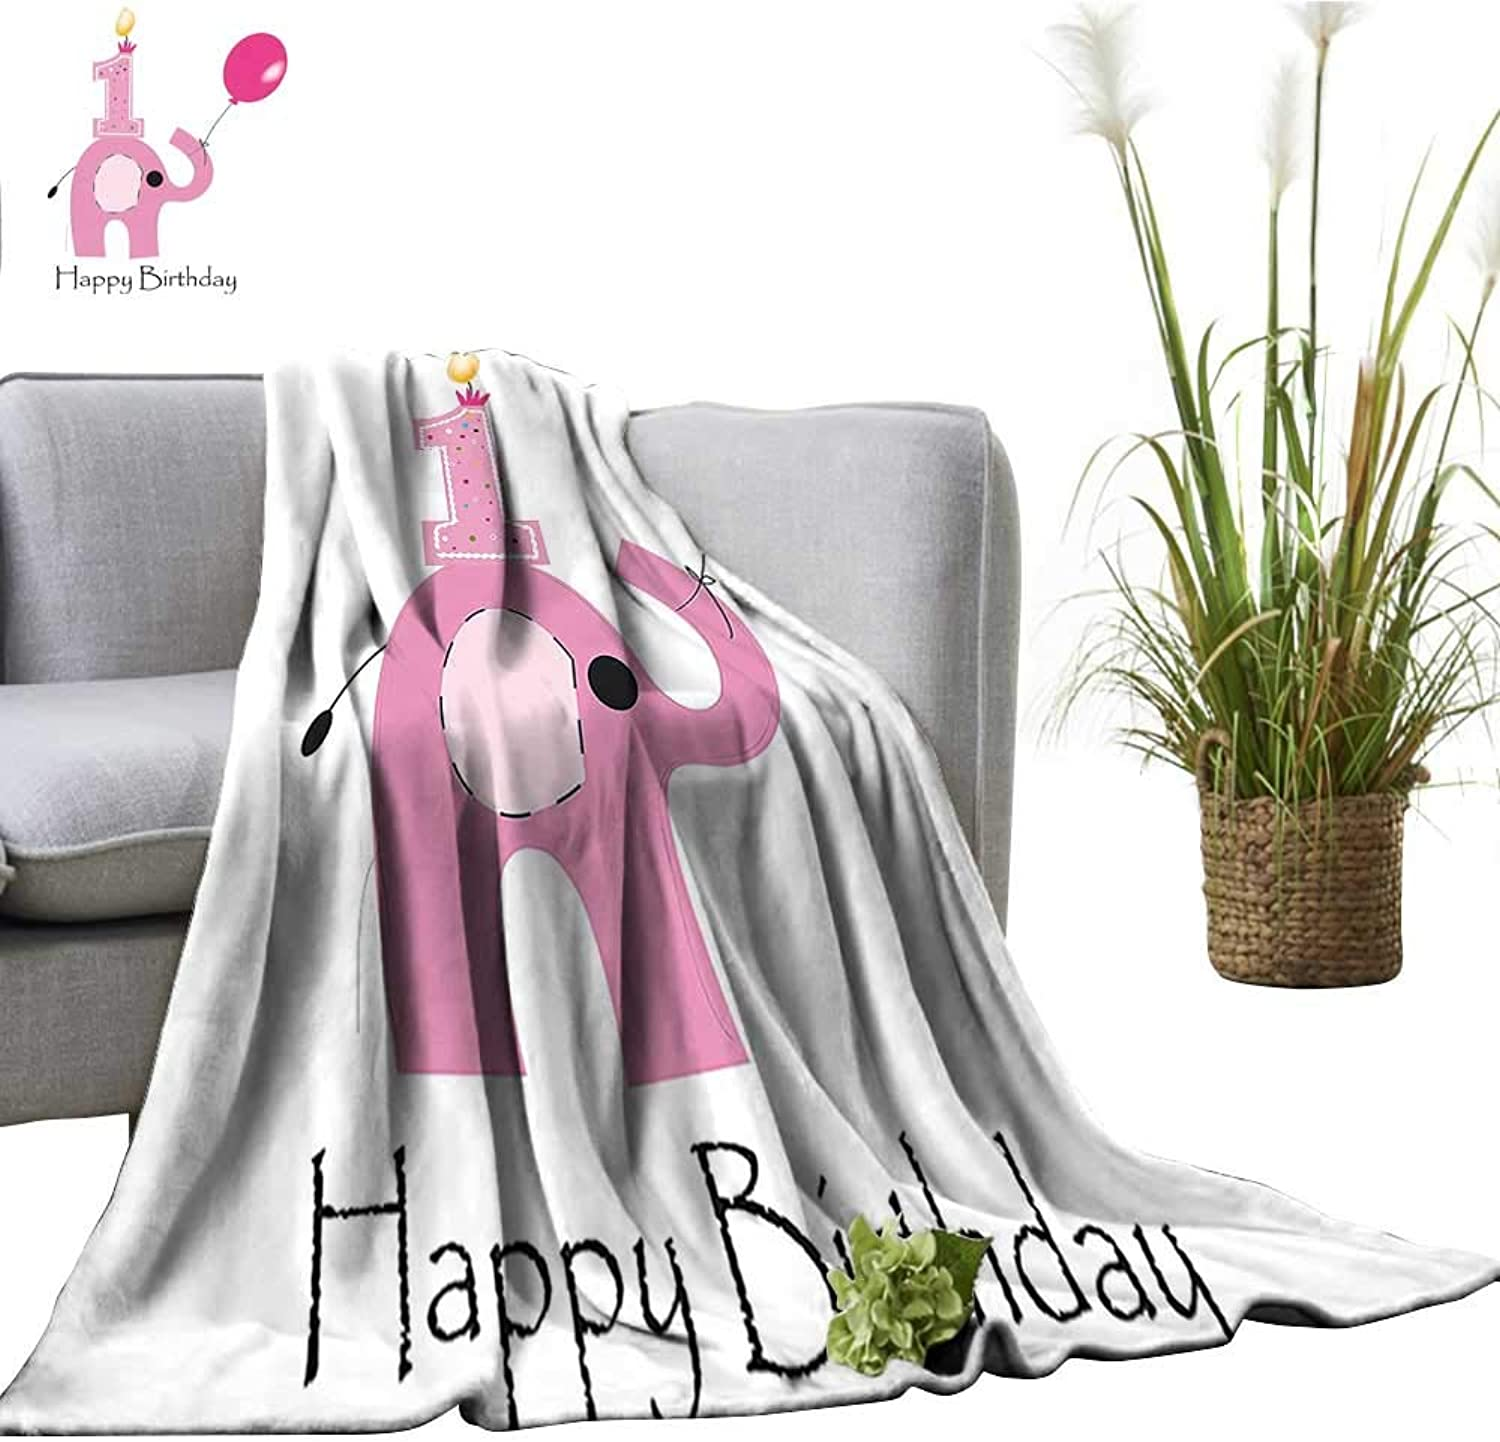 YOYI Travel Blanket Minimalist Design Elephant and Baby Girl Party purplec Light Pink and White Easy to Carry Blanket 50 x70